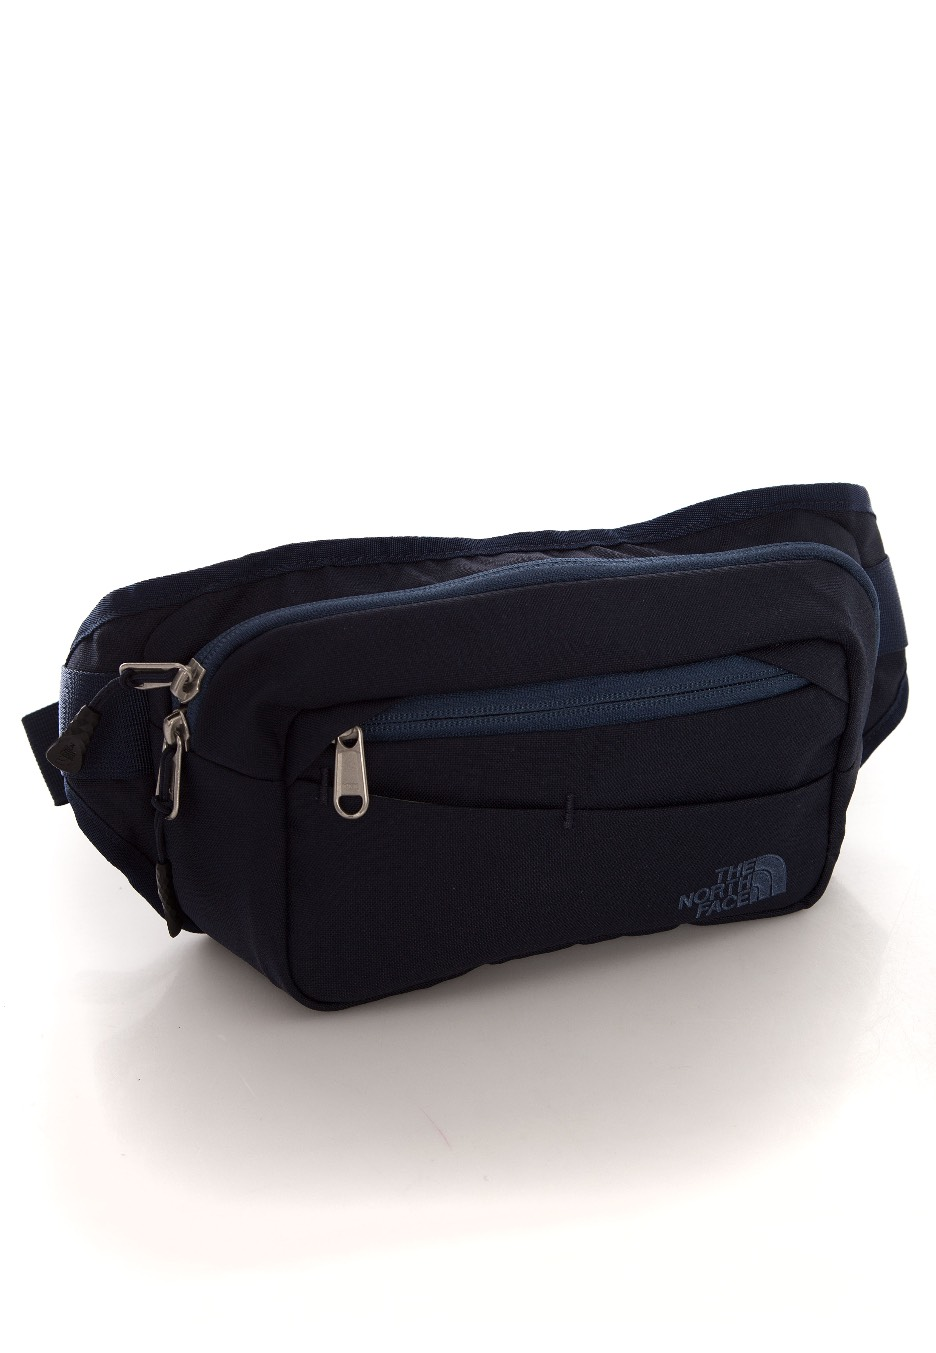 6636fec79 The North Face - Bozer II Urban Navy/Shad - Hip Bag